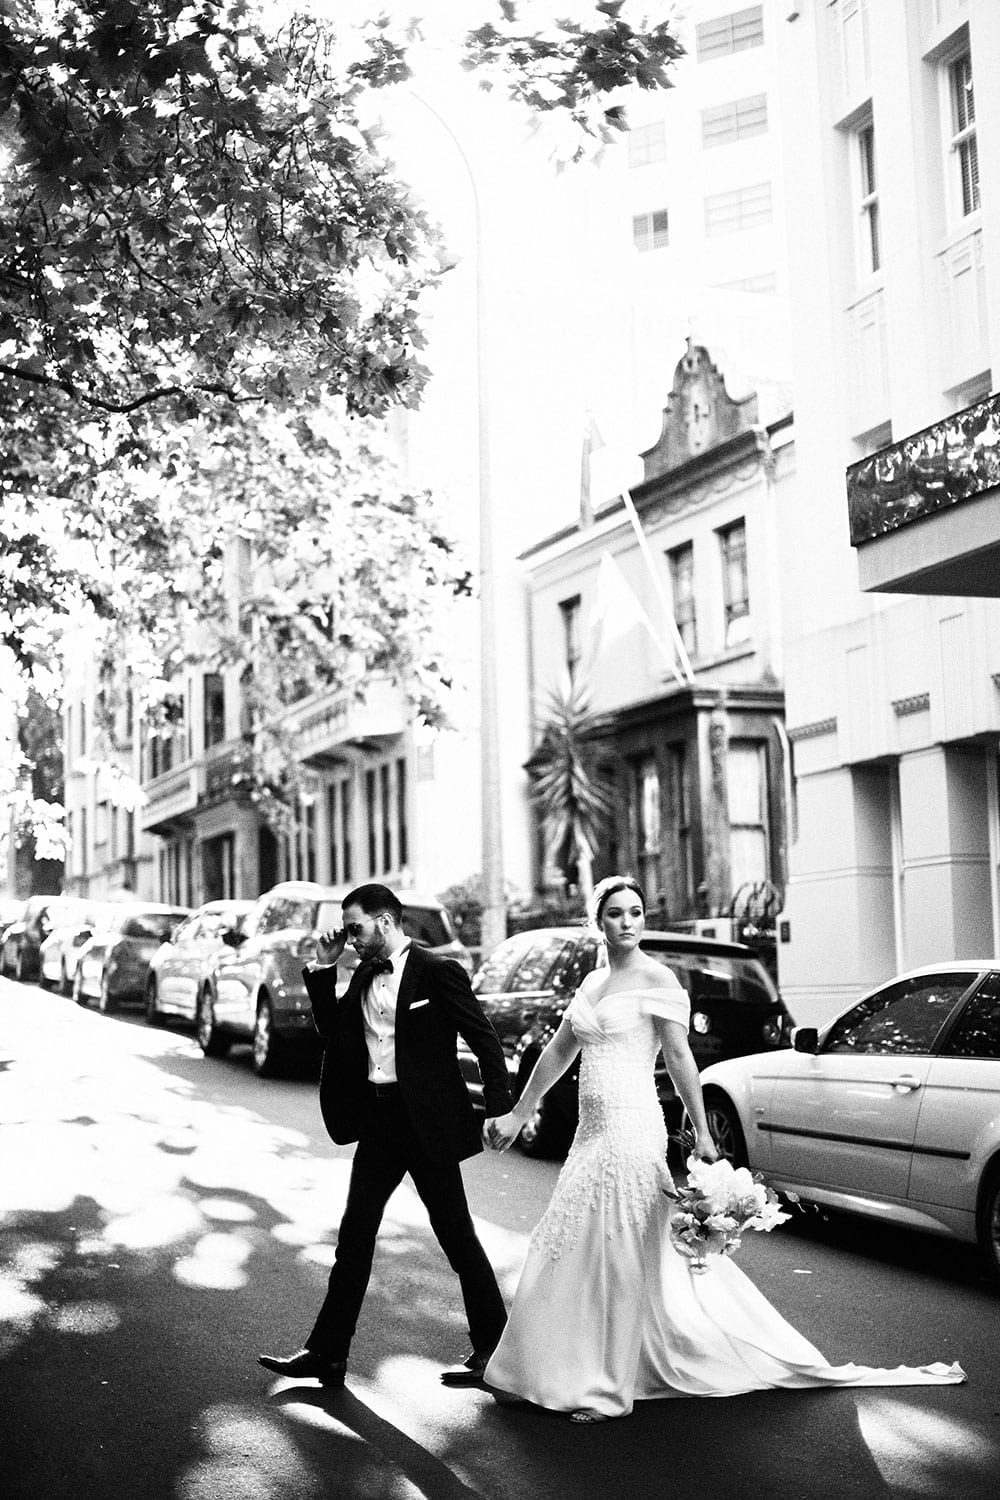 Vinka Design Features Real Weddings - bride in custom made gown with stunning silhouette. Bride and groom cross beautiful street in black and white